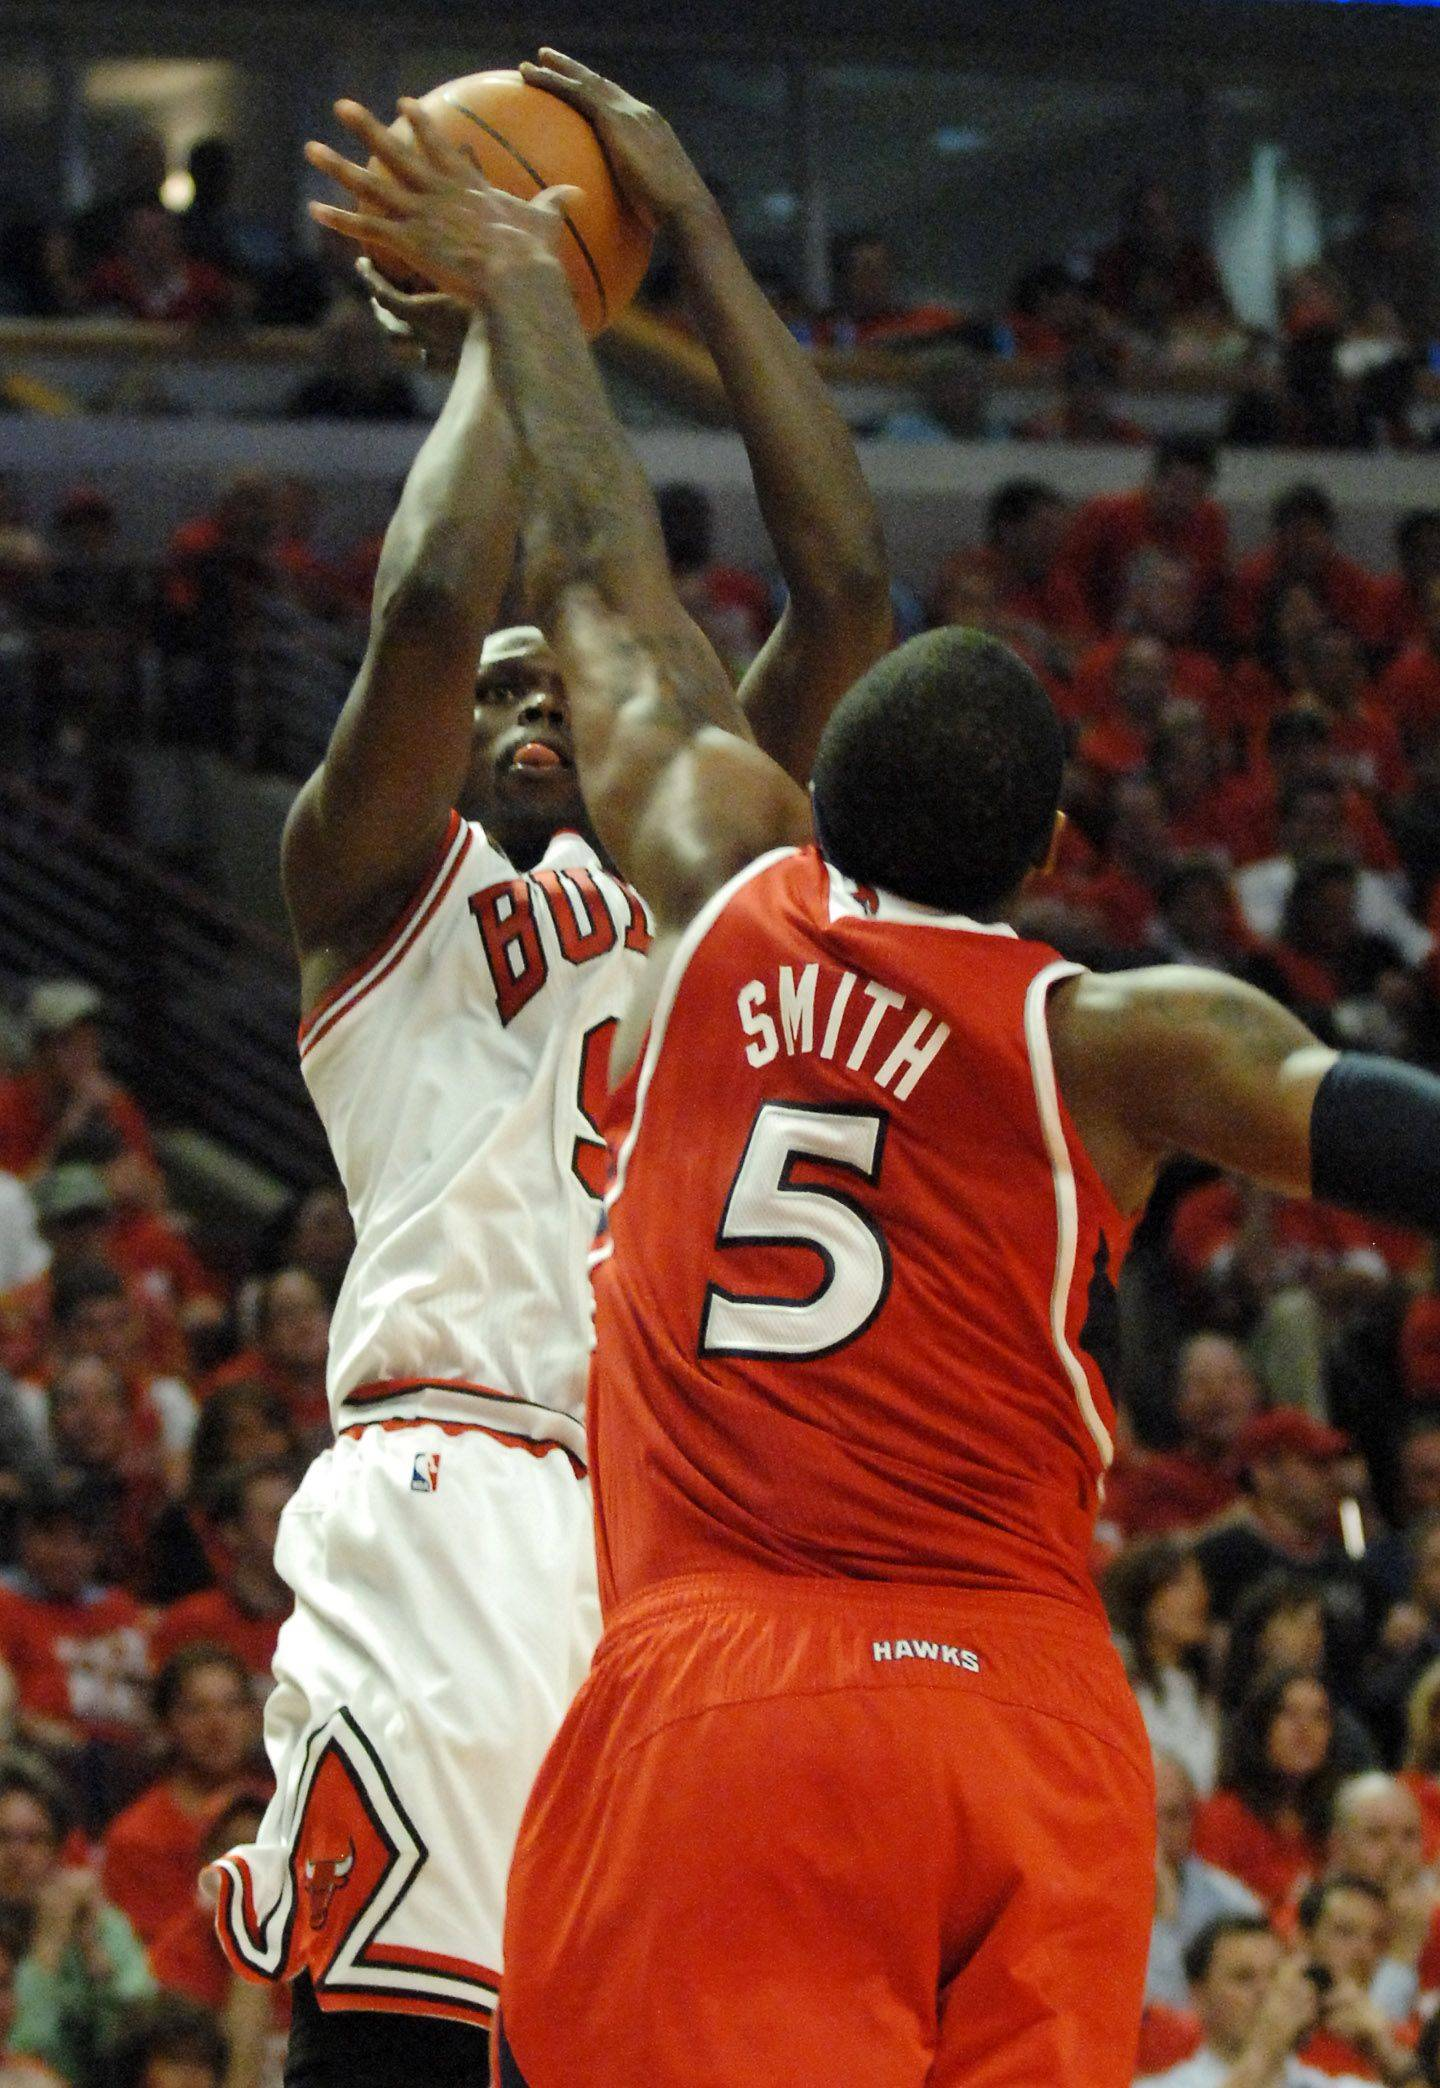 Luol Deng puts up a shot against Atlanta's Josh Smith at the United Center Tuesday.